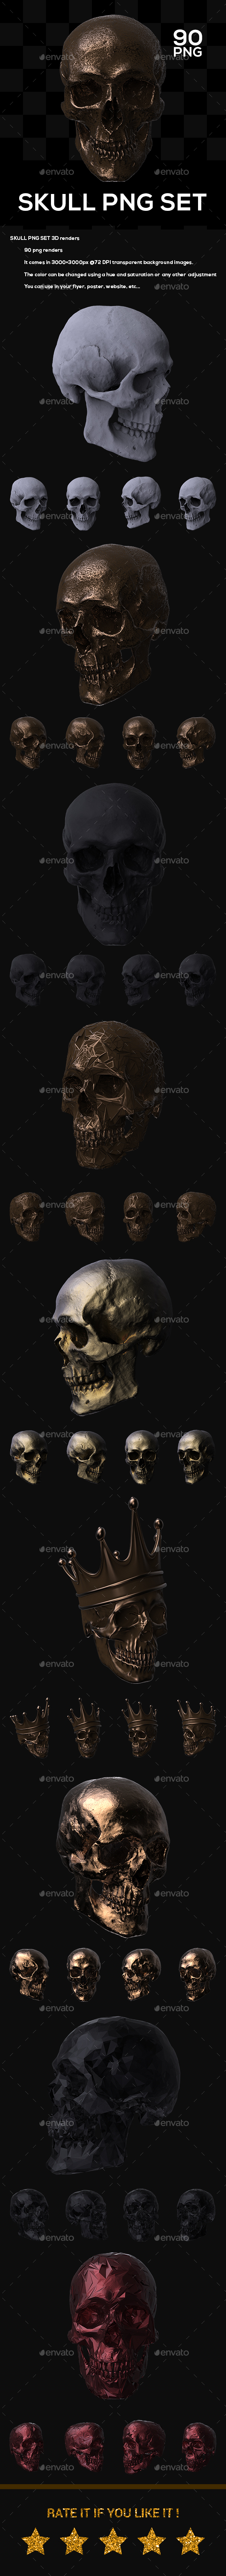 Skull PNG Set - Objects 3D Renders